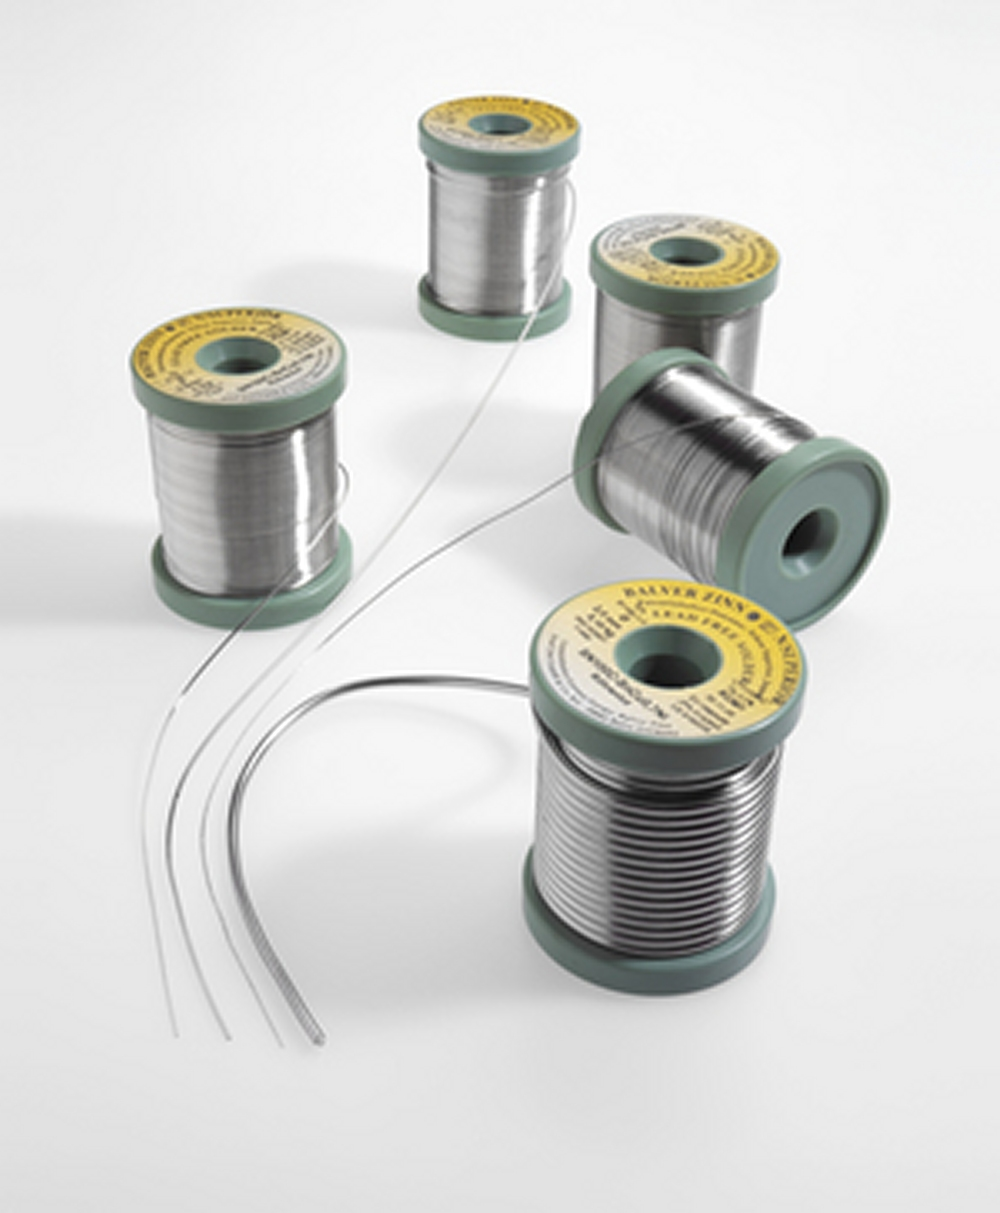 The Balver Zinn Group to Supply BRILLIANT B2012 Solder Wire for the ...